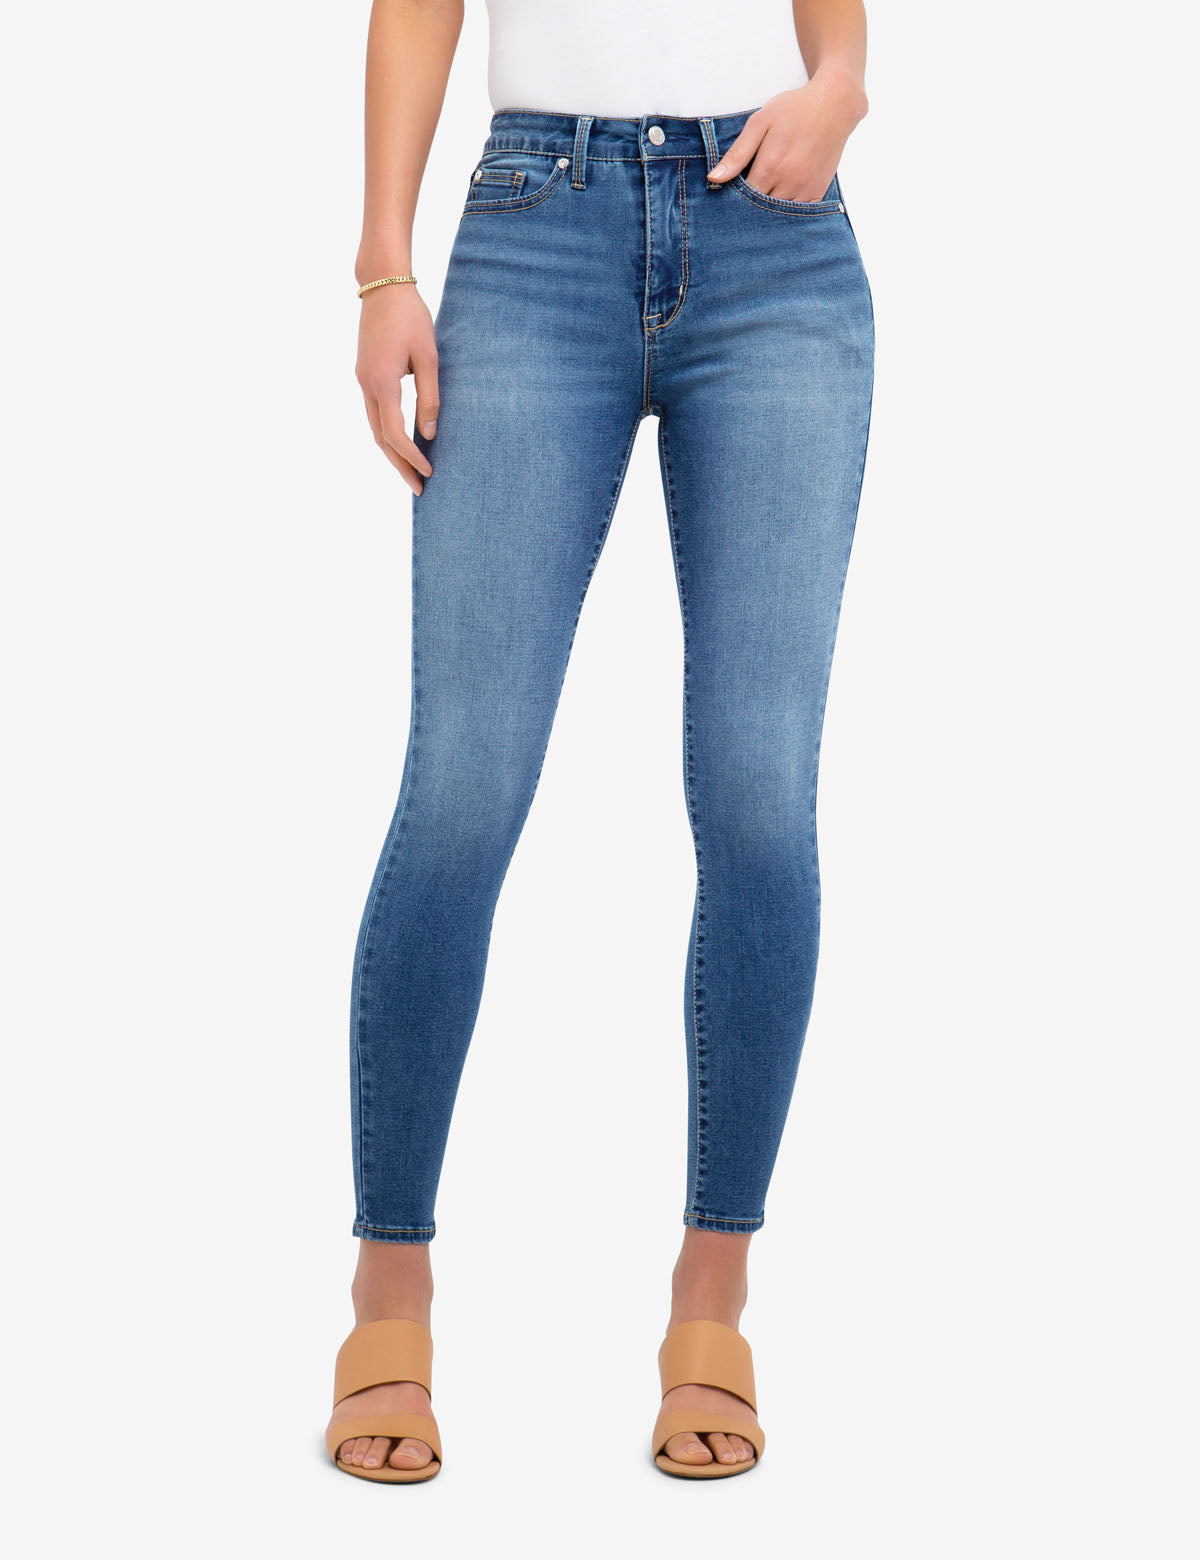 REPREVE® HIGH RISE JEGGING